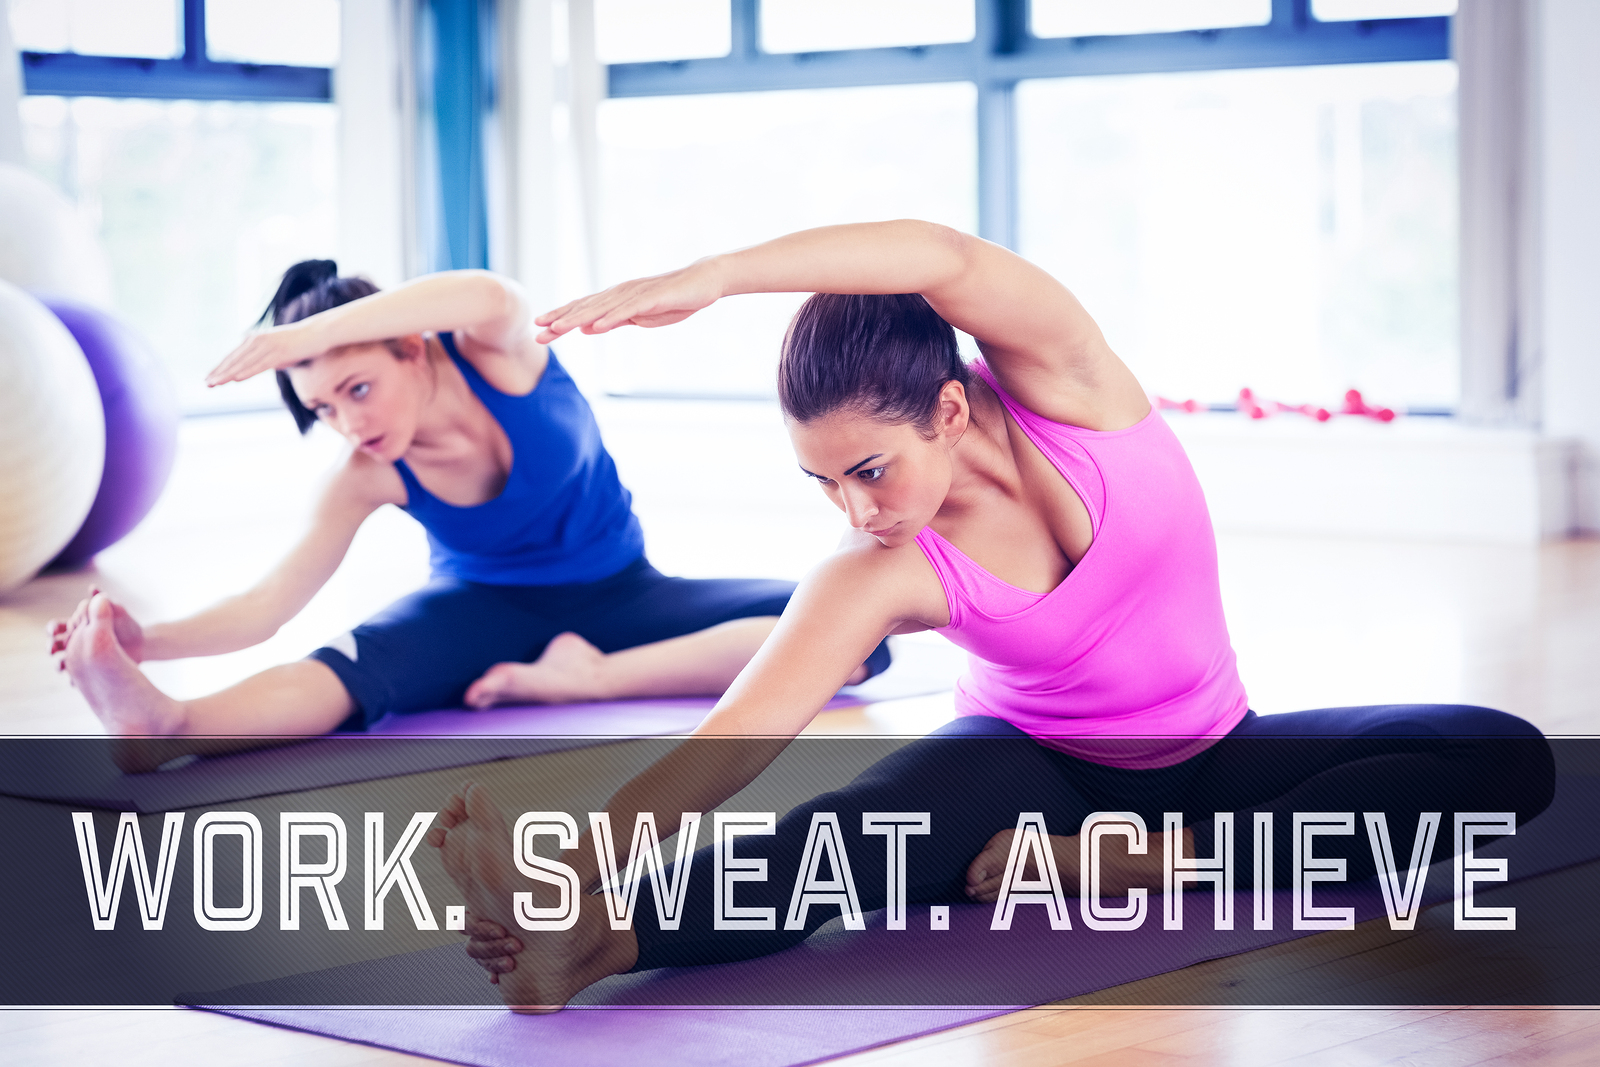 Fit women doing stretching pilate exercises against motivational words